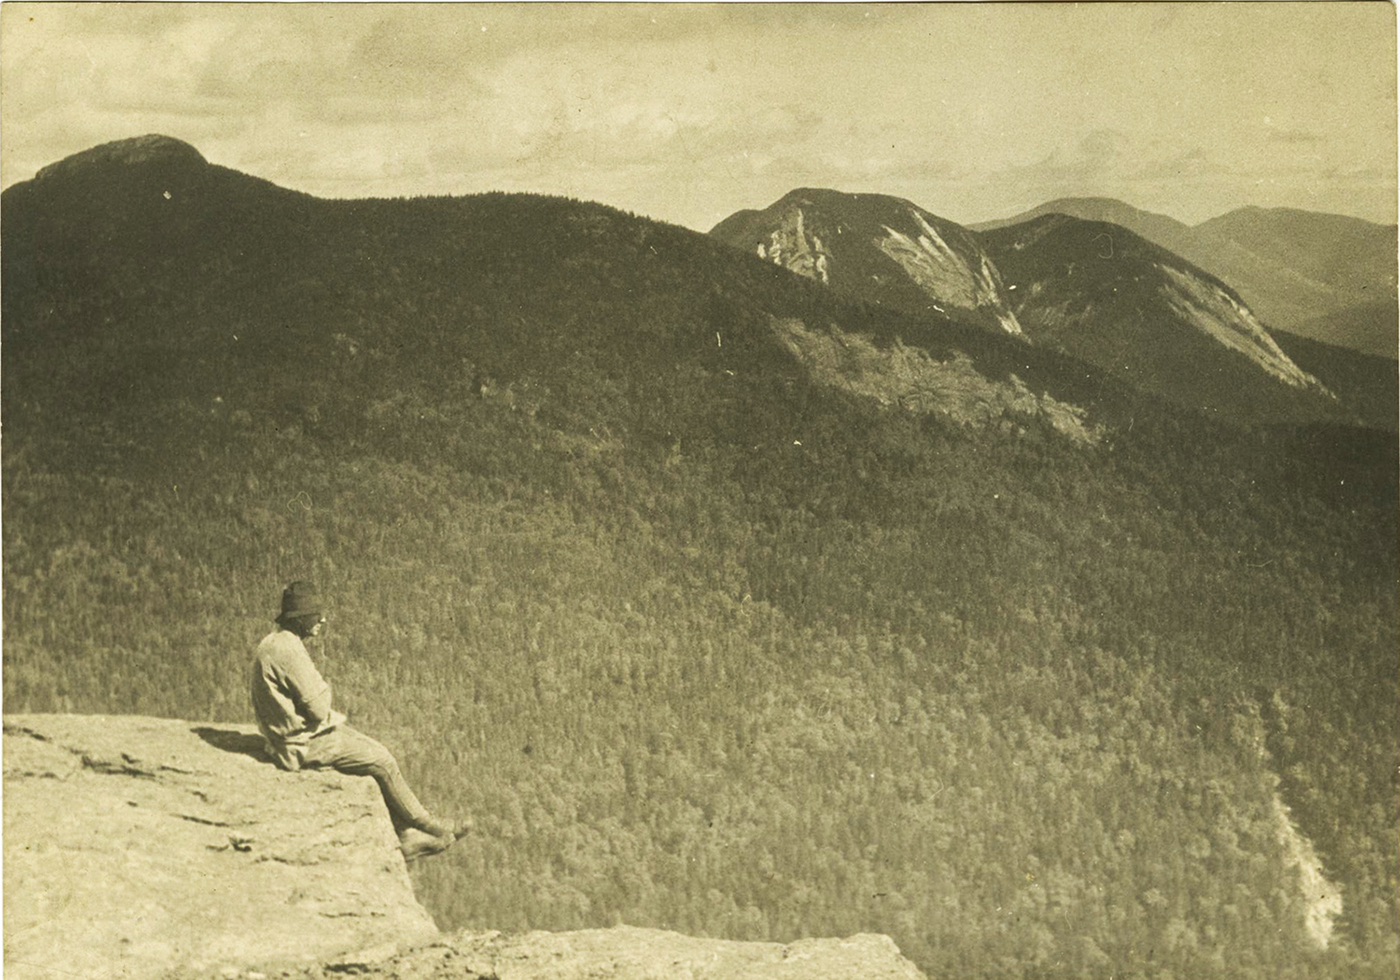 Solitary figure takes in the majestic beauty of the Adirondack mountains, c. 1915.